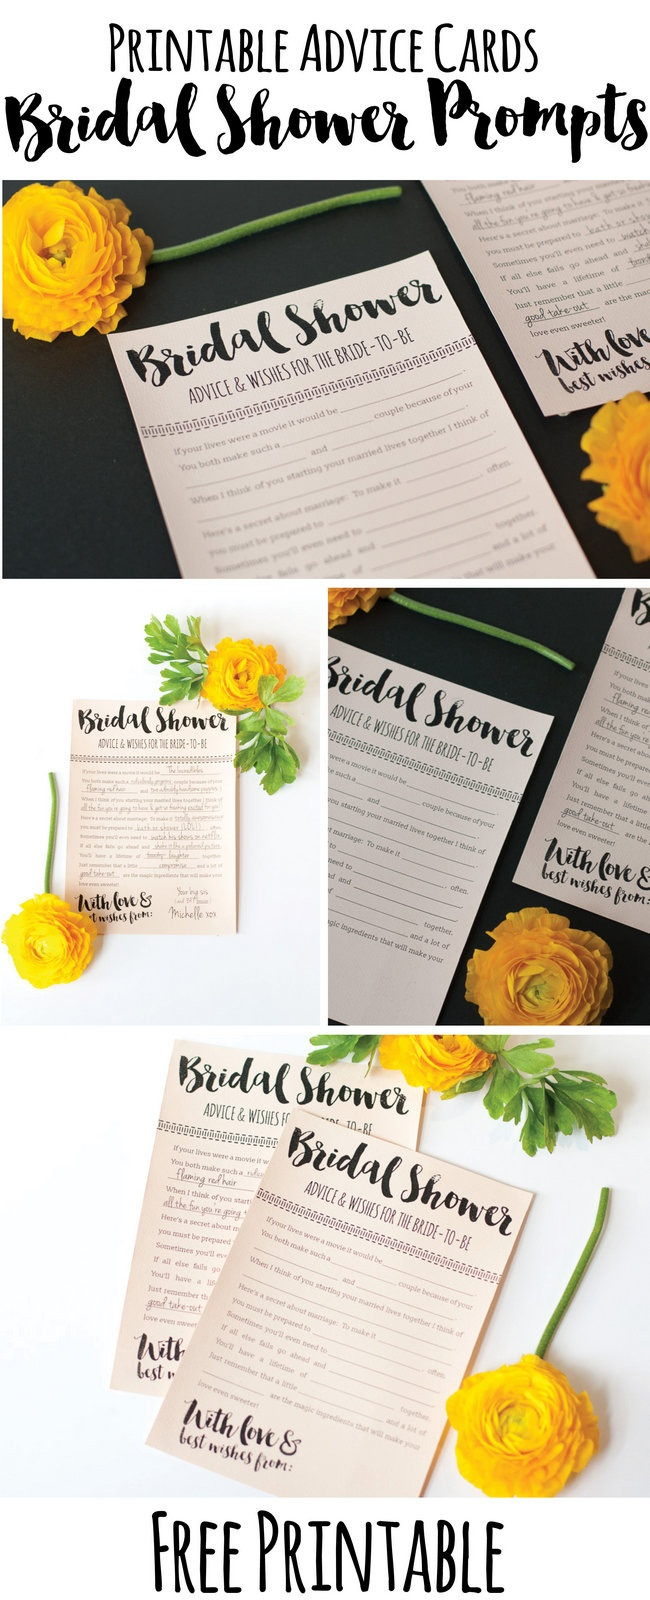 Fun Printable Bridal Shower Advice Cards - Free Download ? - Free Printable Bridal Shower Advice Cards